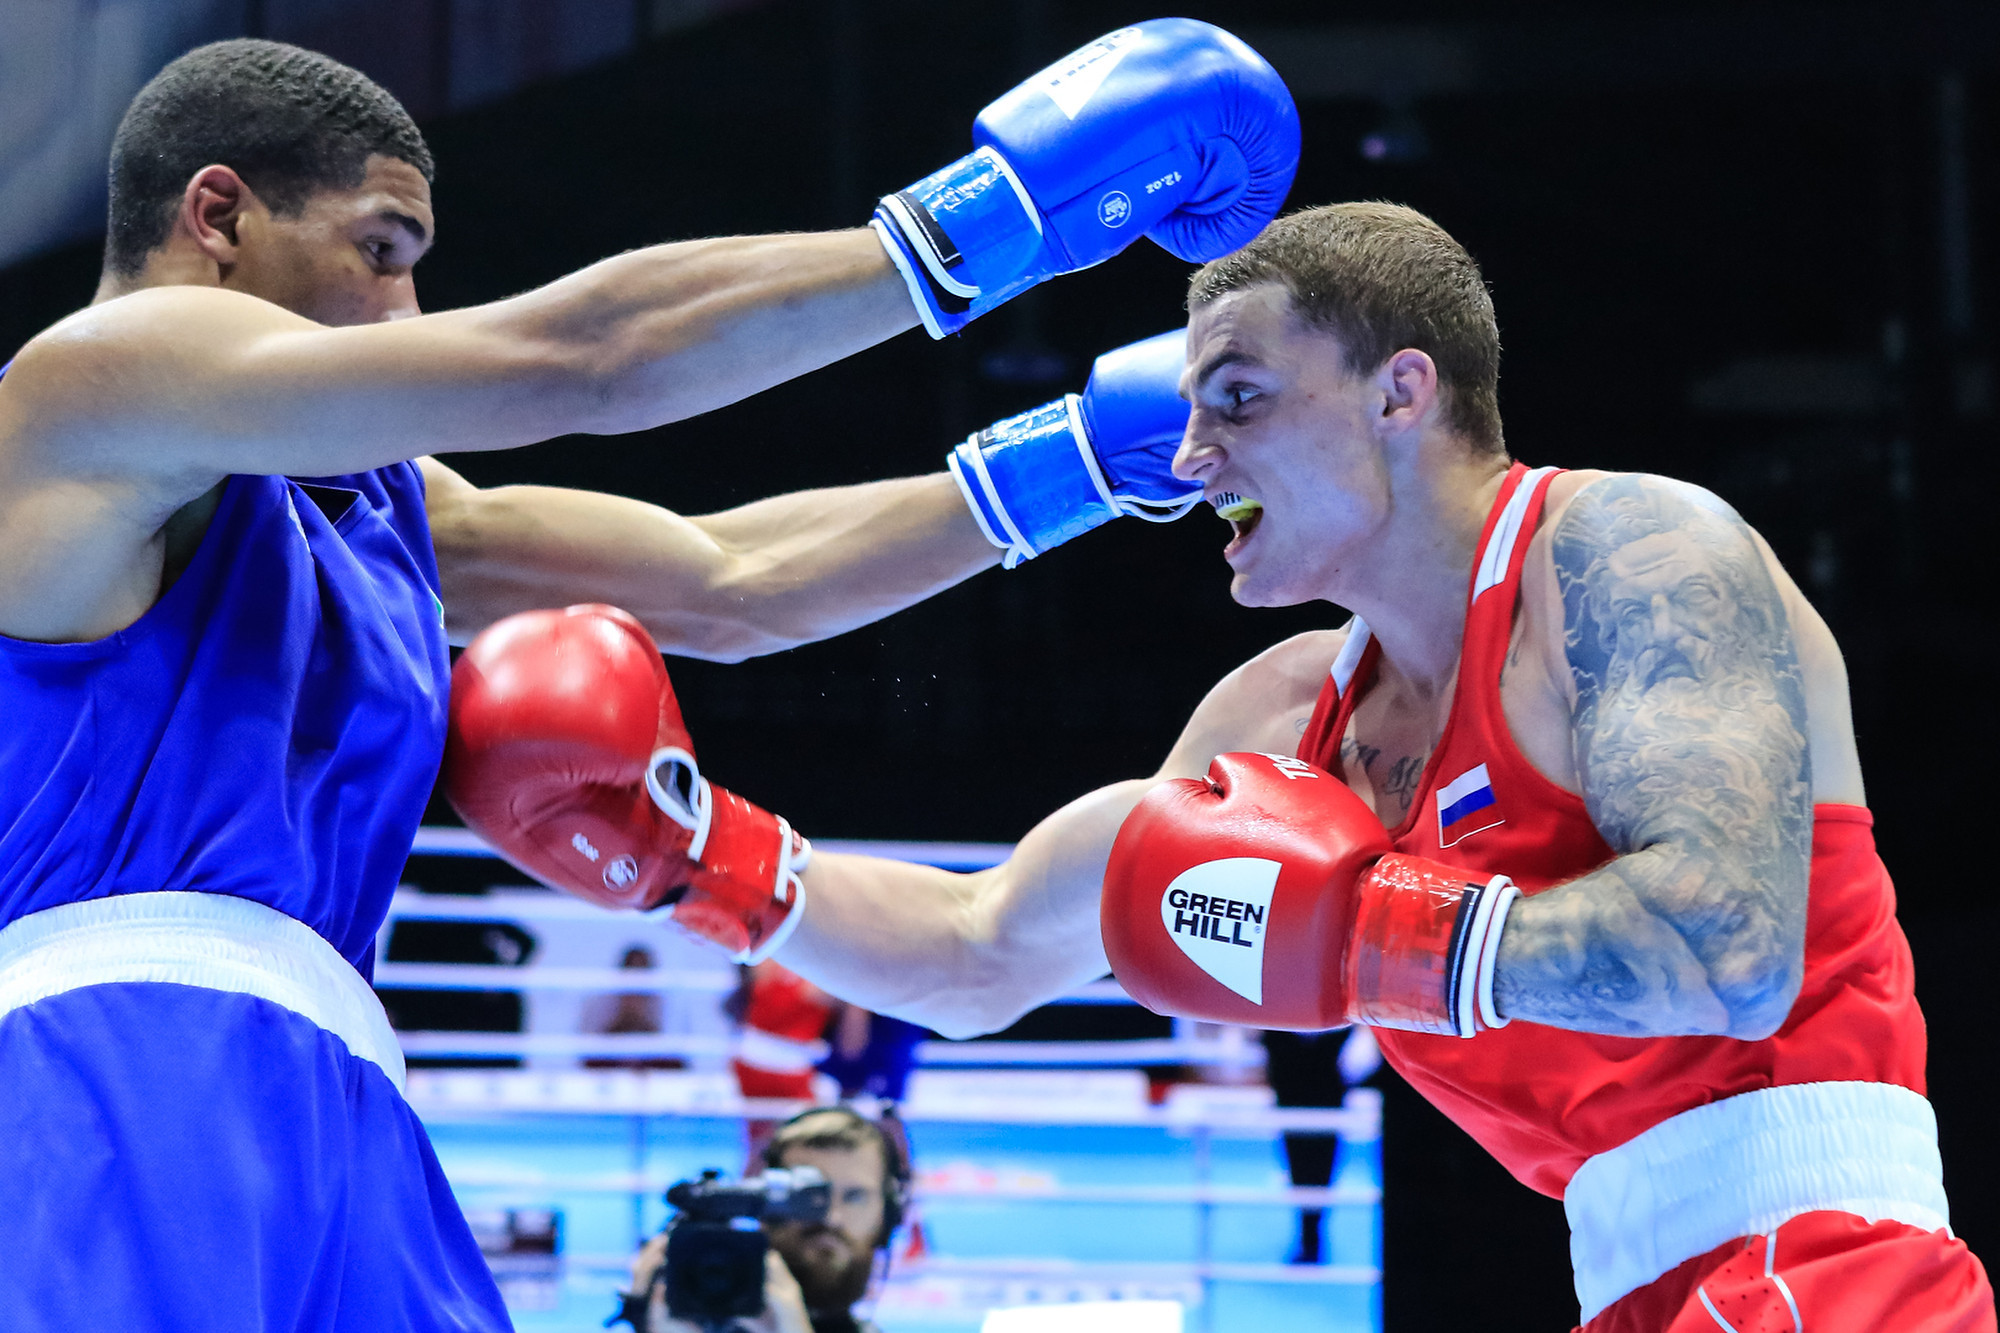 Russia's Gleb Bakshi progressed to the middleweight gold-medal bout with a victory over Hebert Conceicao Sousa of Brazil ©Yekaterinburg 2019